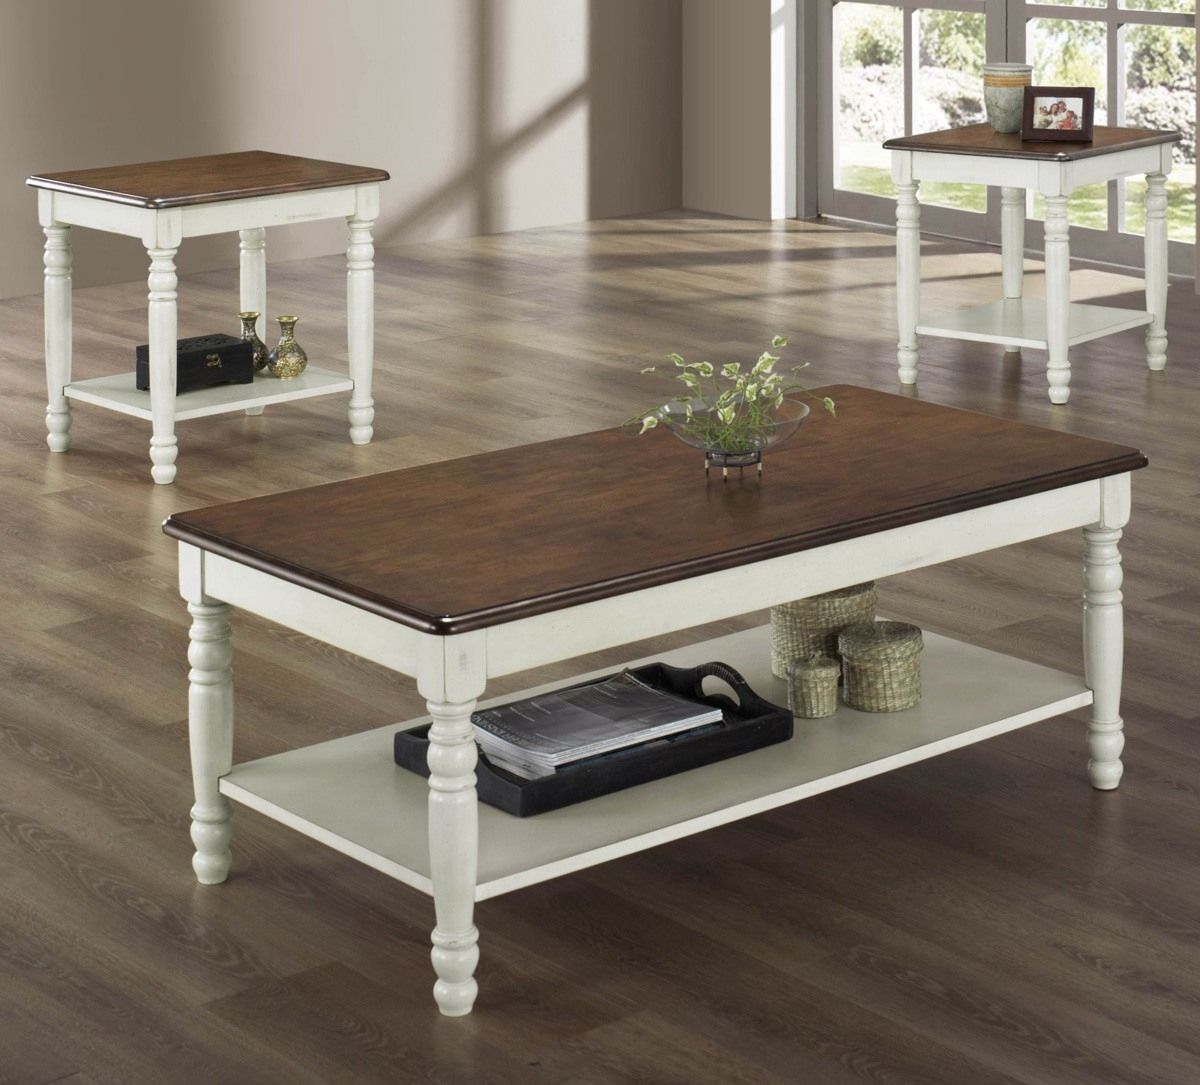 White Coffee Table With Dark Wood Top Httptherapybychancecom - White coffee table with dark wood top